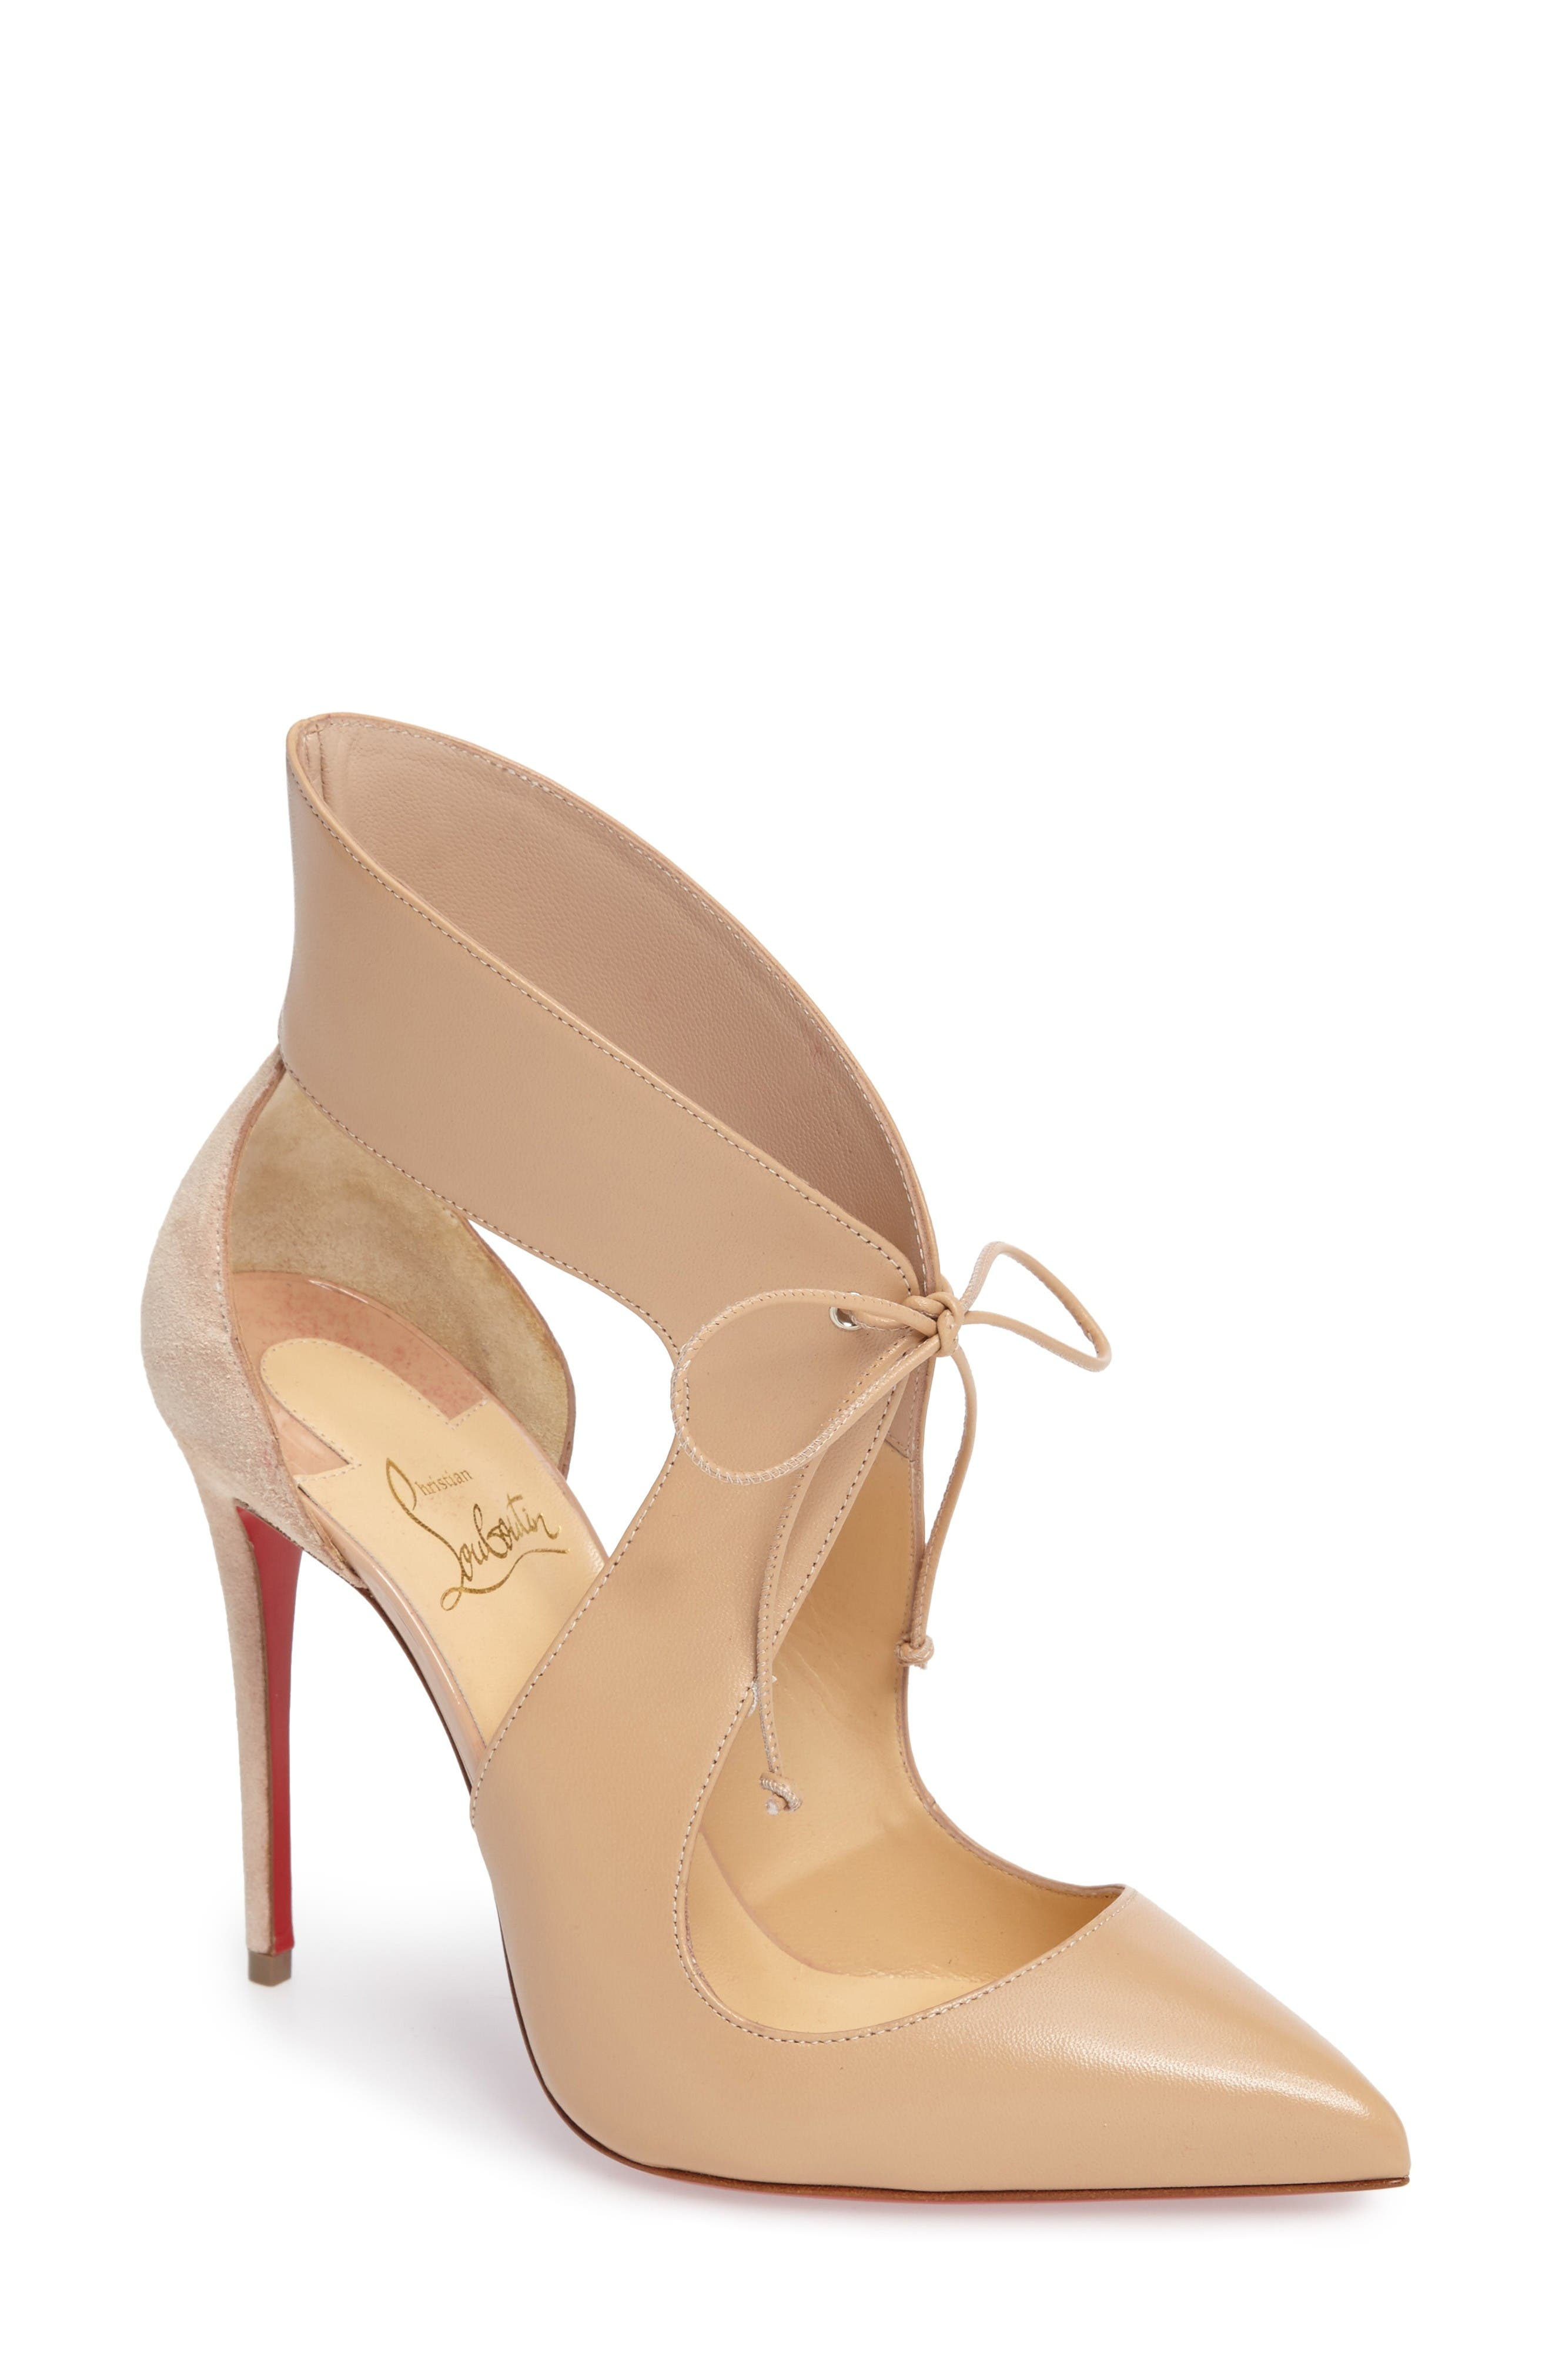 Alternate Image 1 Selected - Christian Louboutin Ferme Rouge Pointy Toe Pump (Women)